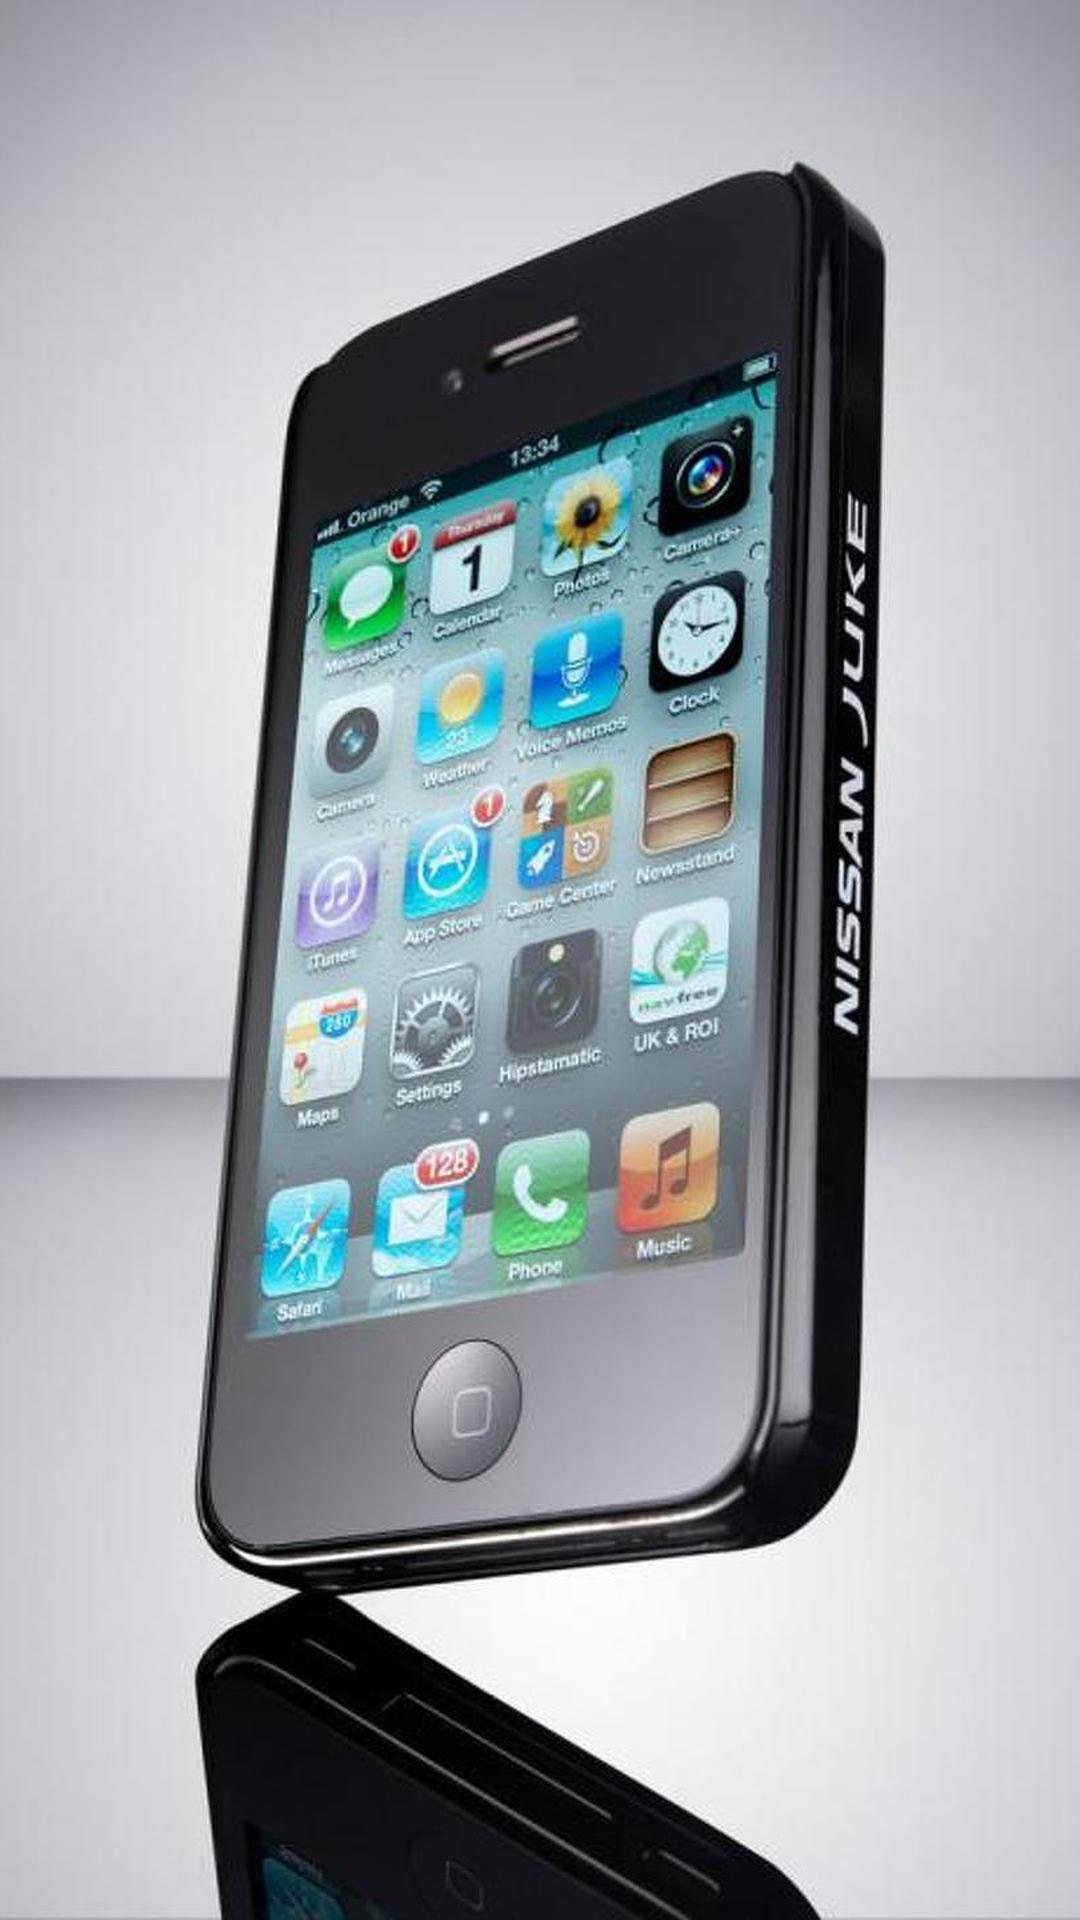 Nissan introduces the world's first self-healing iPhone case